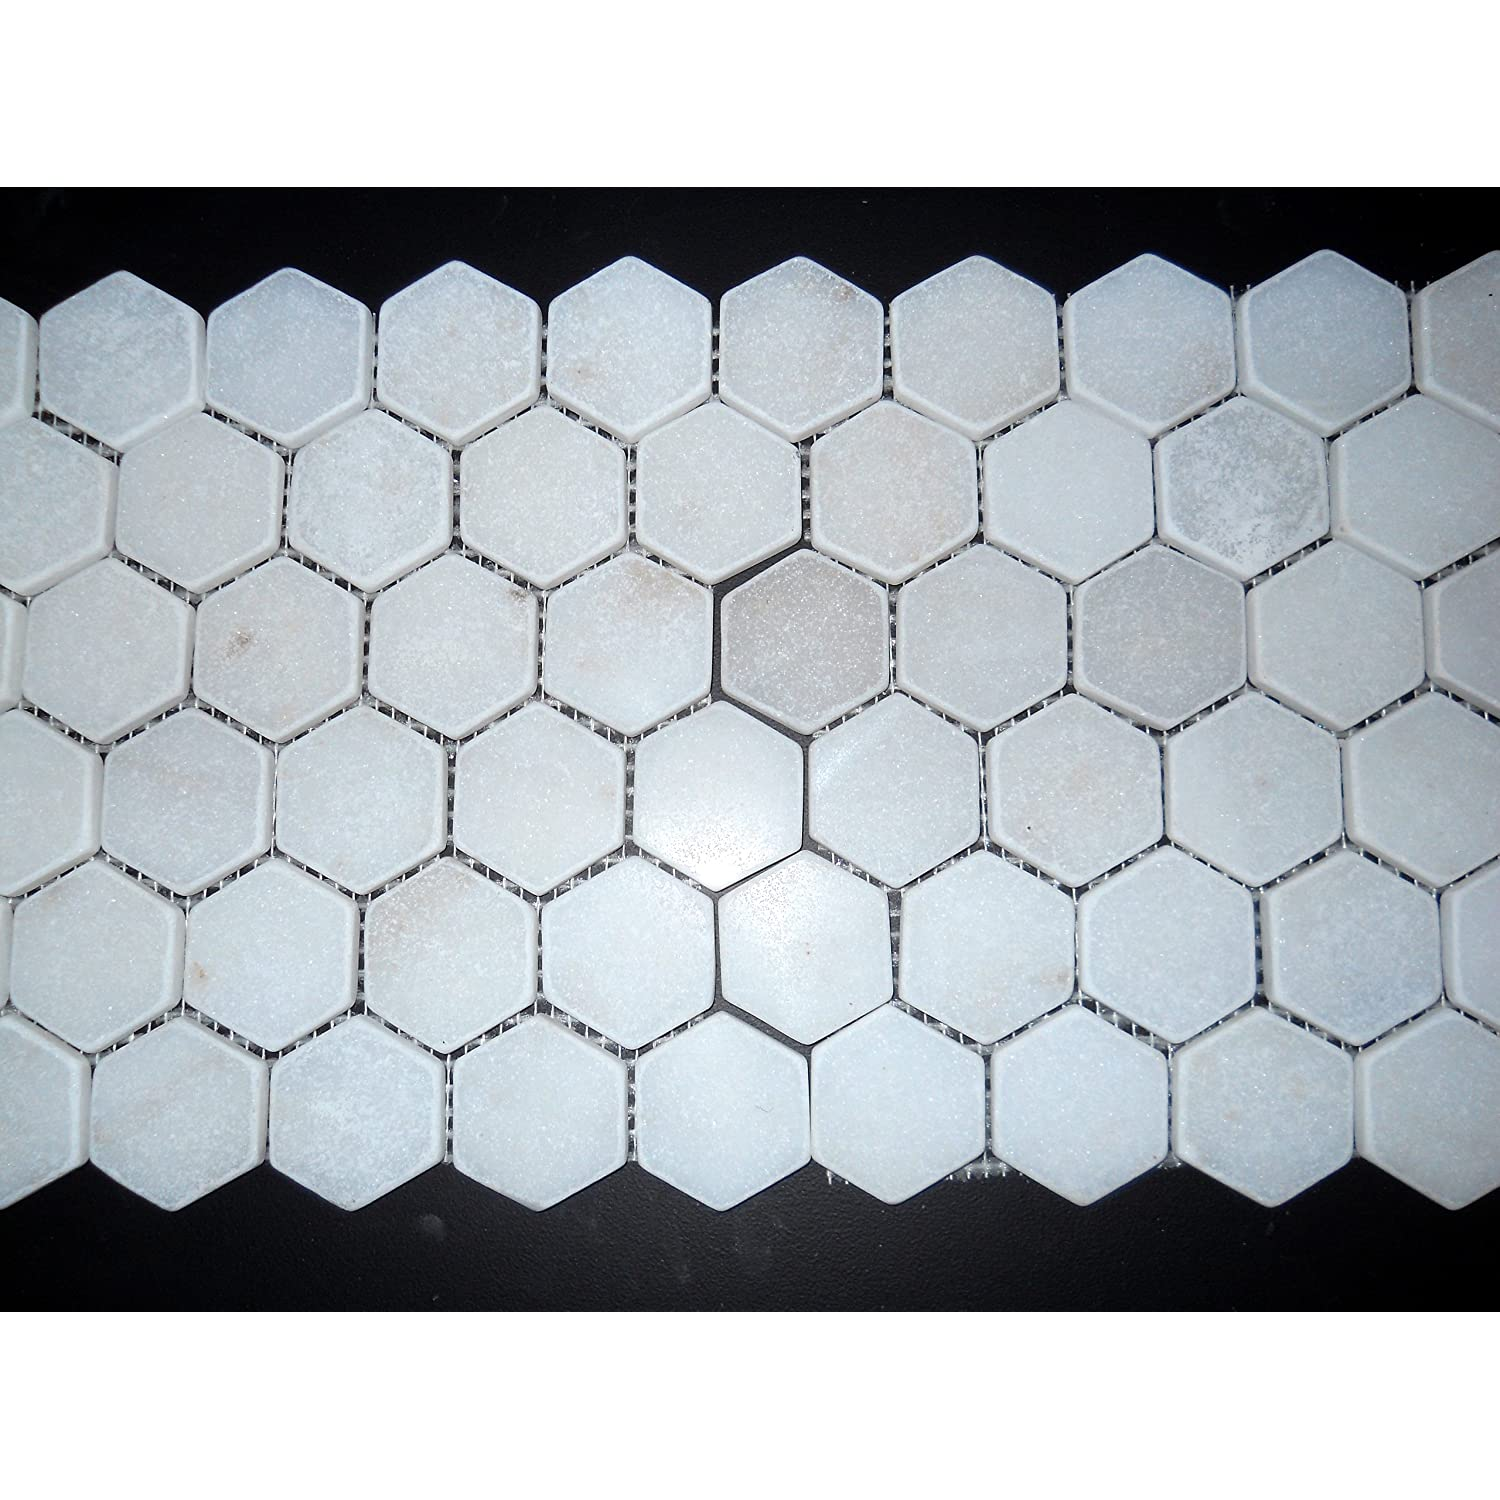 Hexagon 2x2 White Marble TUMBLE Mosaics Meshed on Sheet Tiles